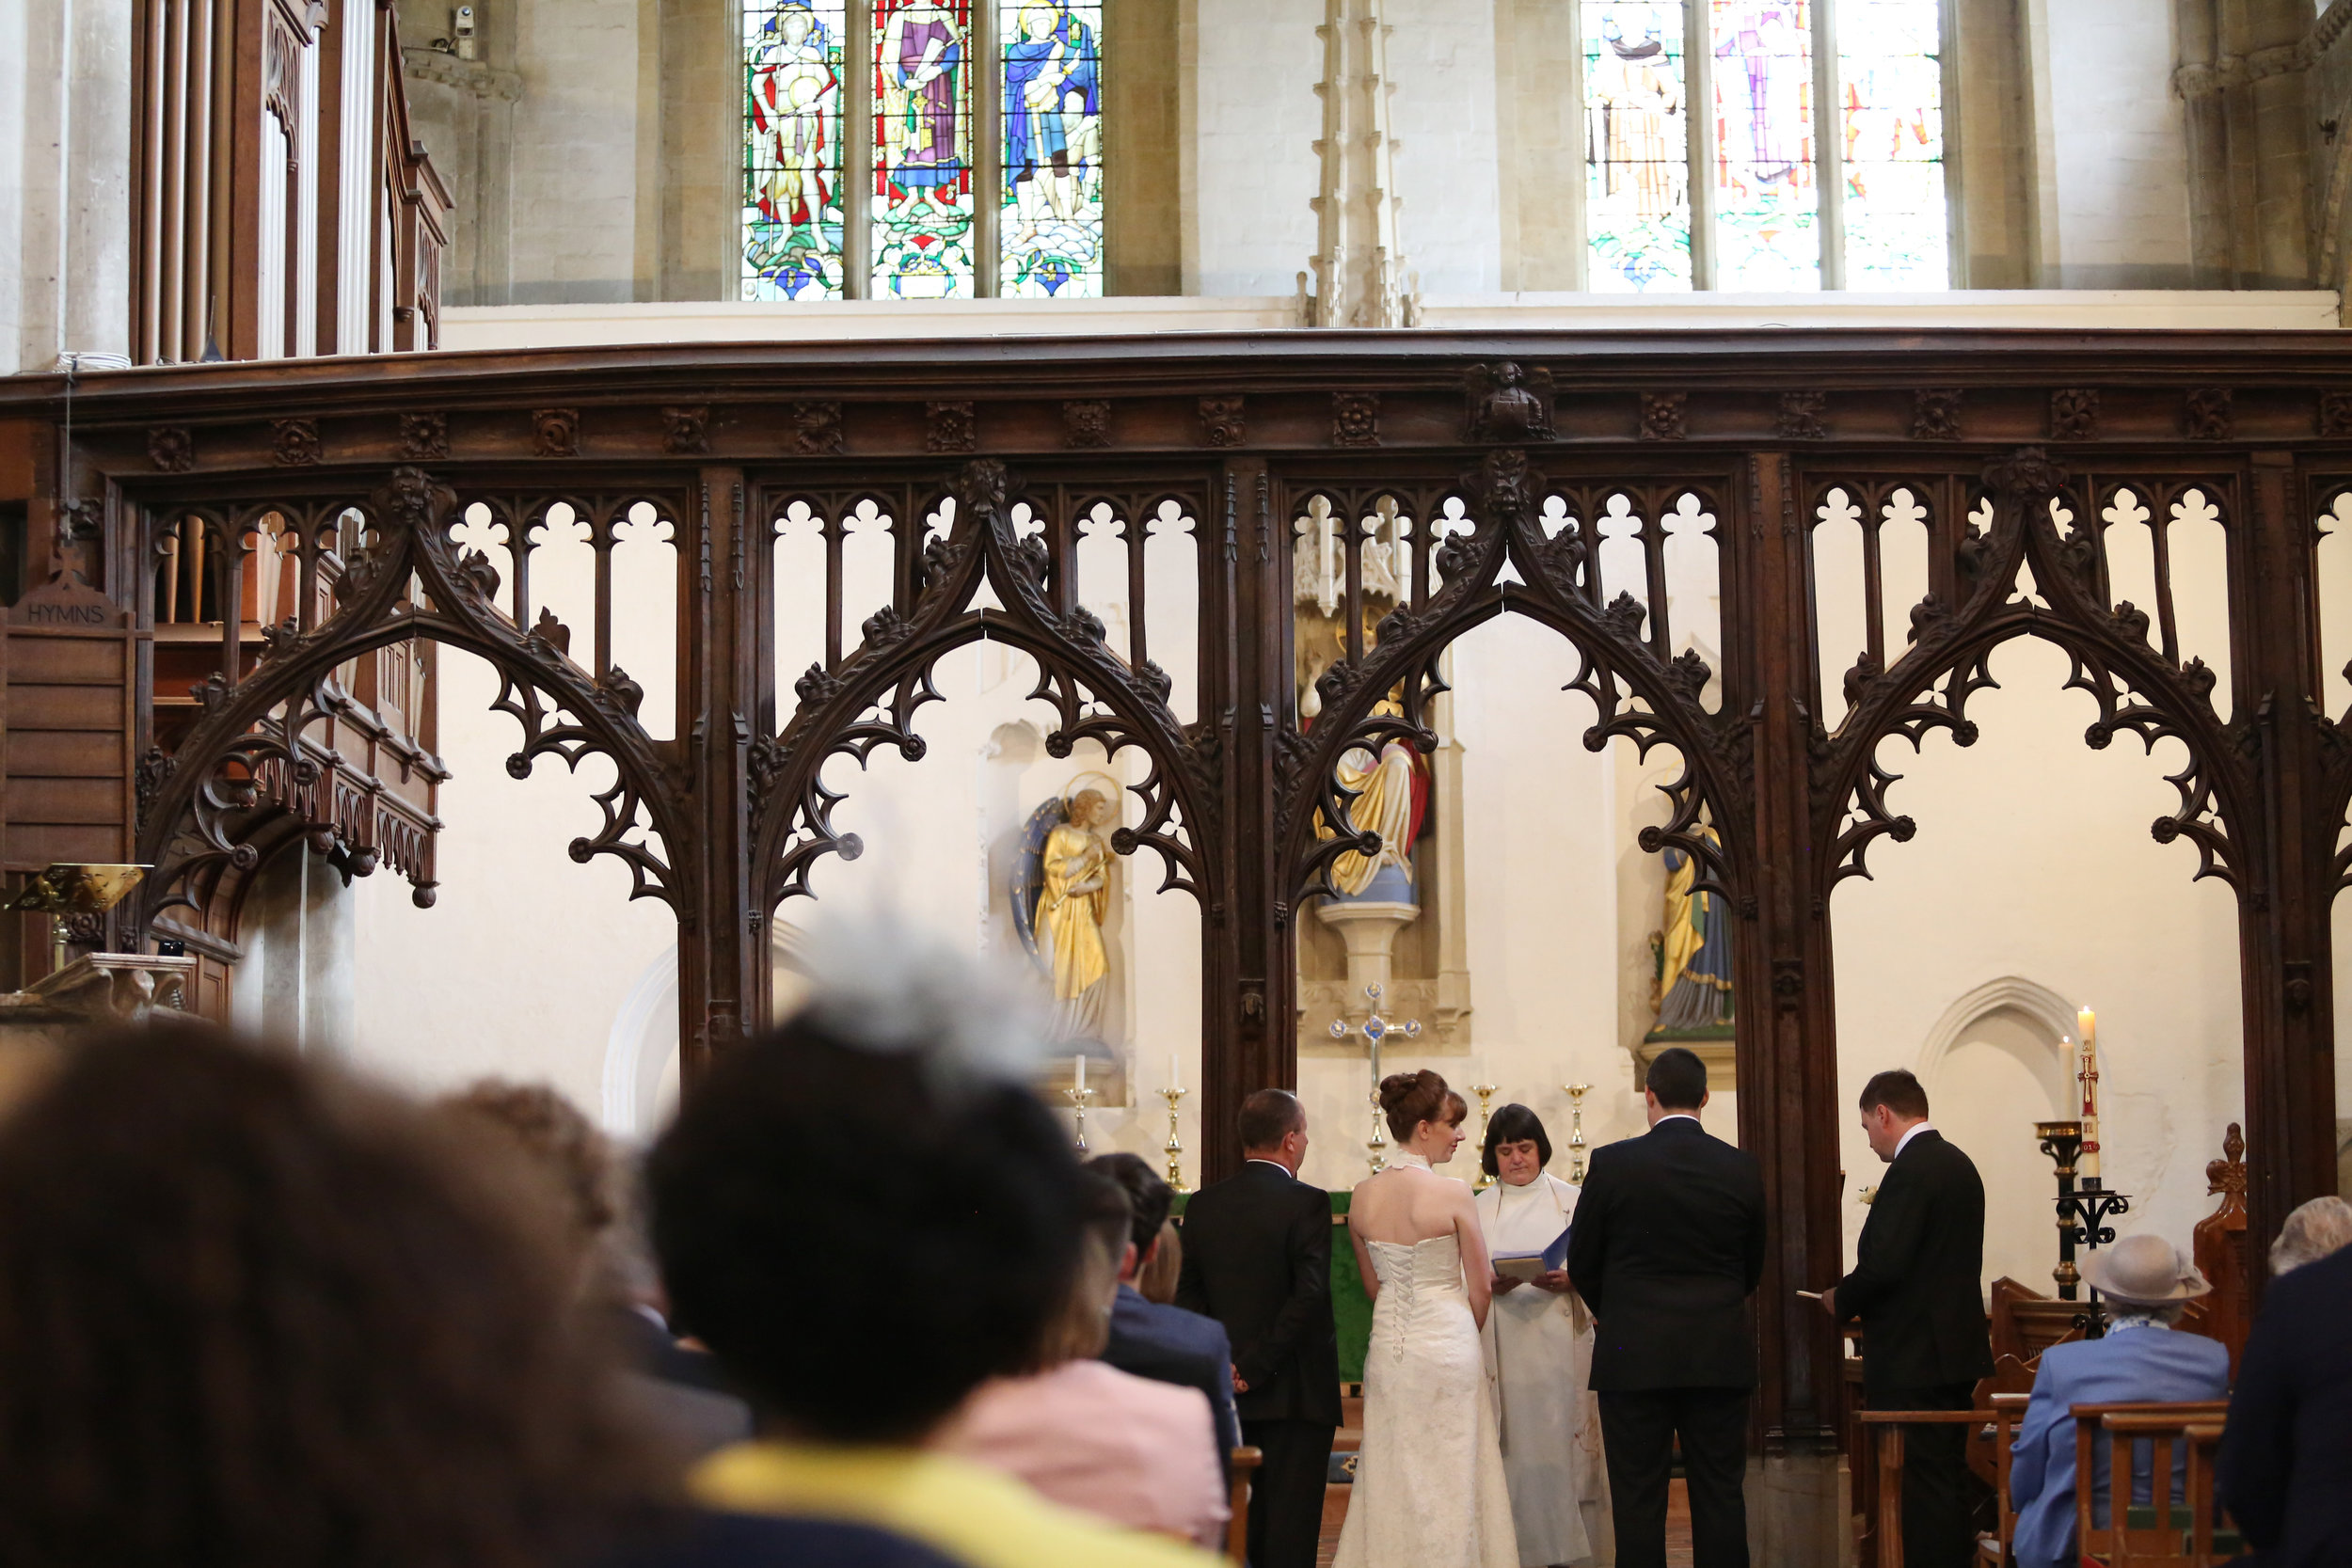 JELLYFISH WEDDING PHOTOGRAPHY THE PRIORY ST PETER CHURCH DUNSTABLE (15).jpg